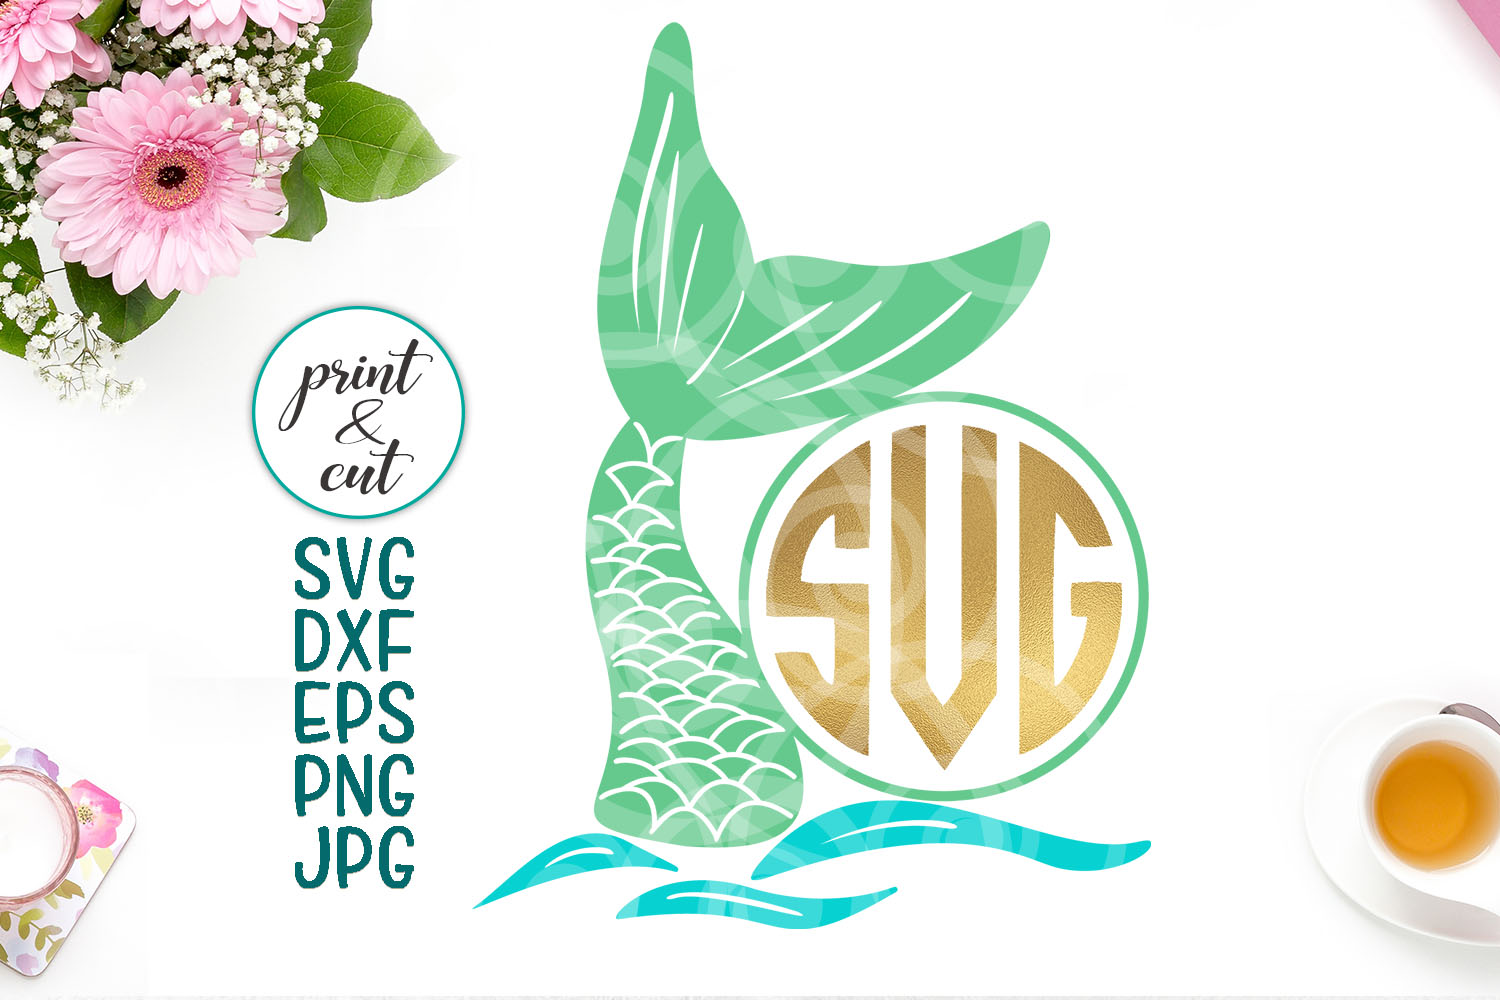 Download Free Mermaid Monogram Mermaid Tail Mermaid Monogram Fish Fish Tail for Cricut Explore, Silhouette and other cutting machines.